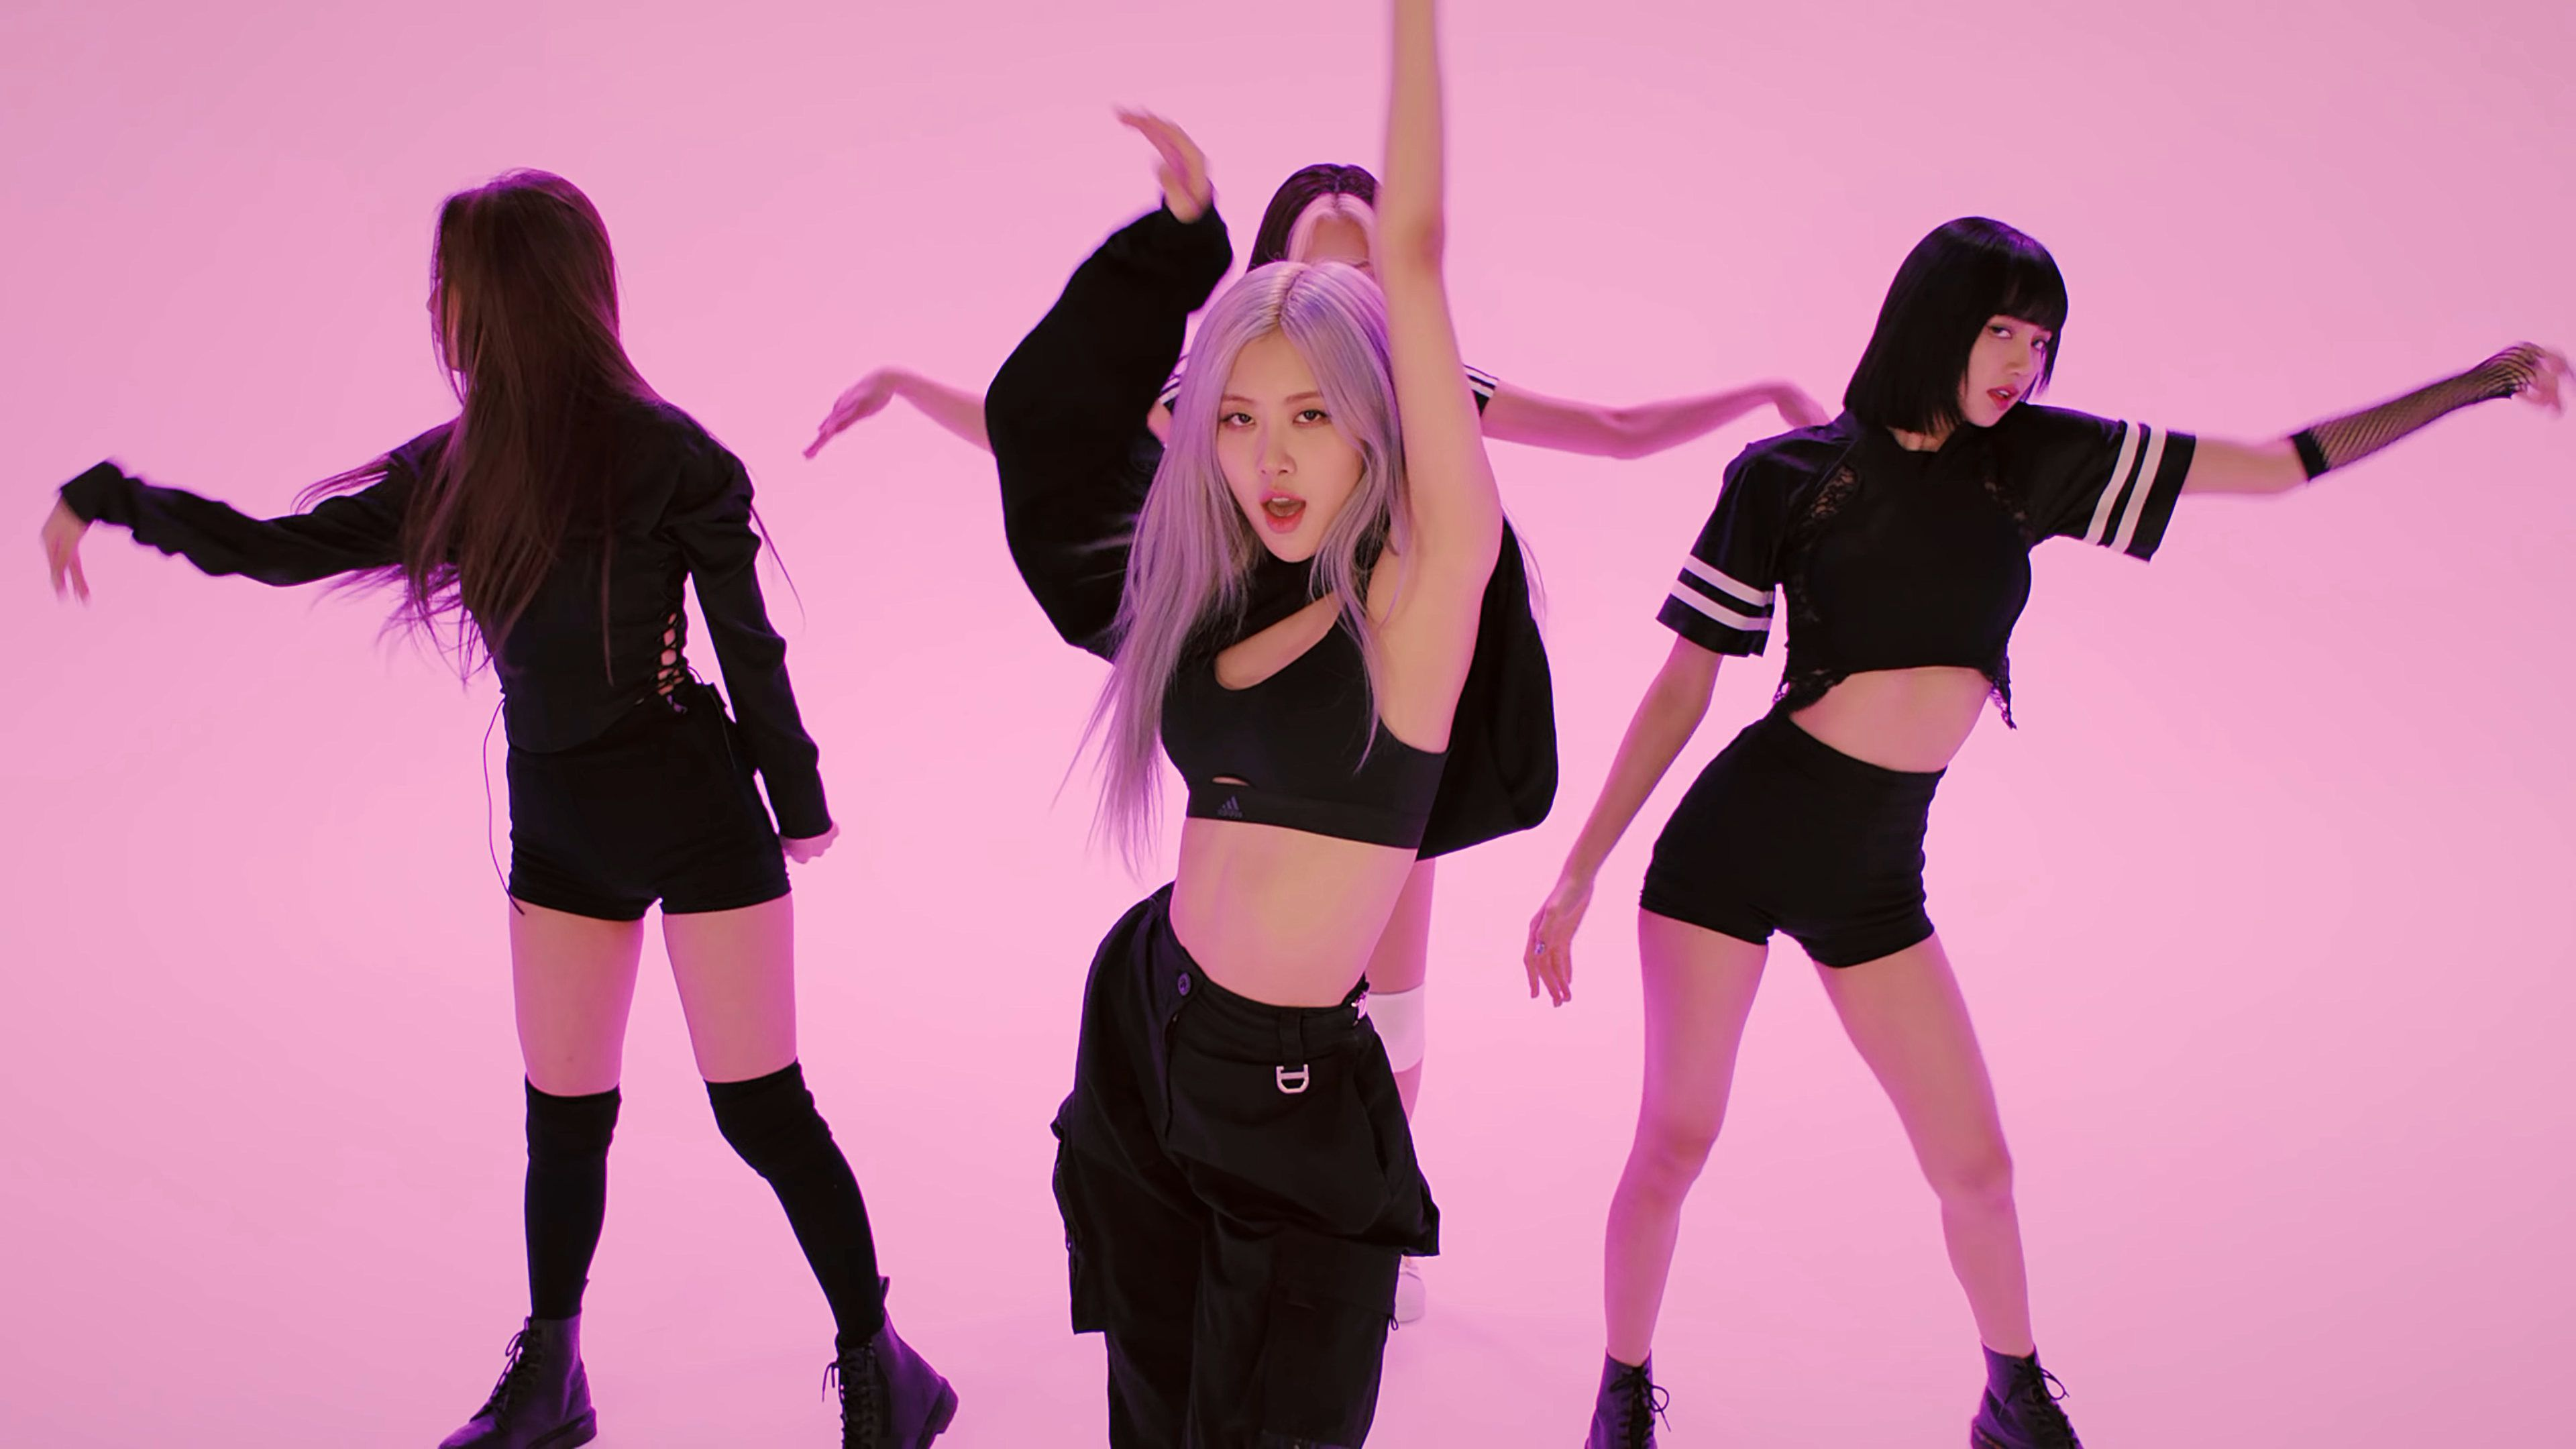 Blackpink How You Like That Dance Performance Mv Screencaps 4k Dance Performance Blackpink Fashion Dance